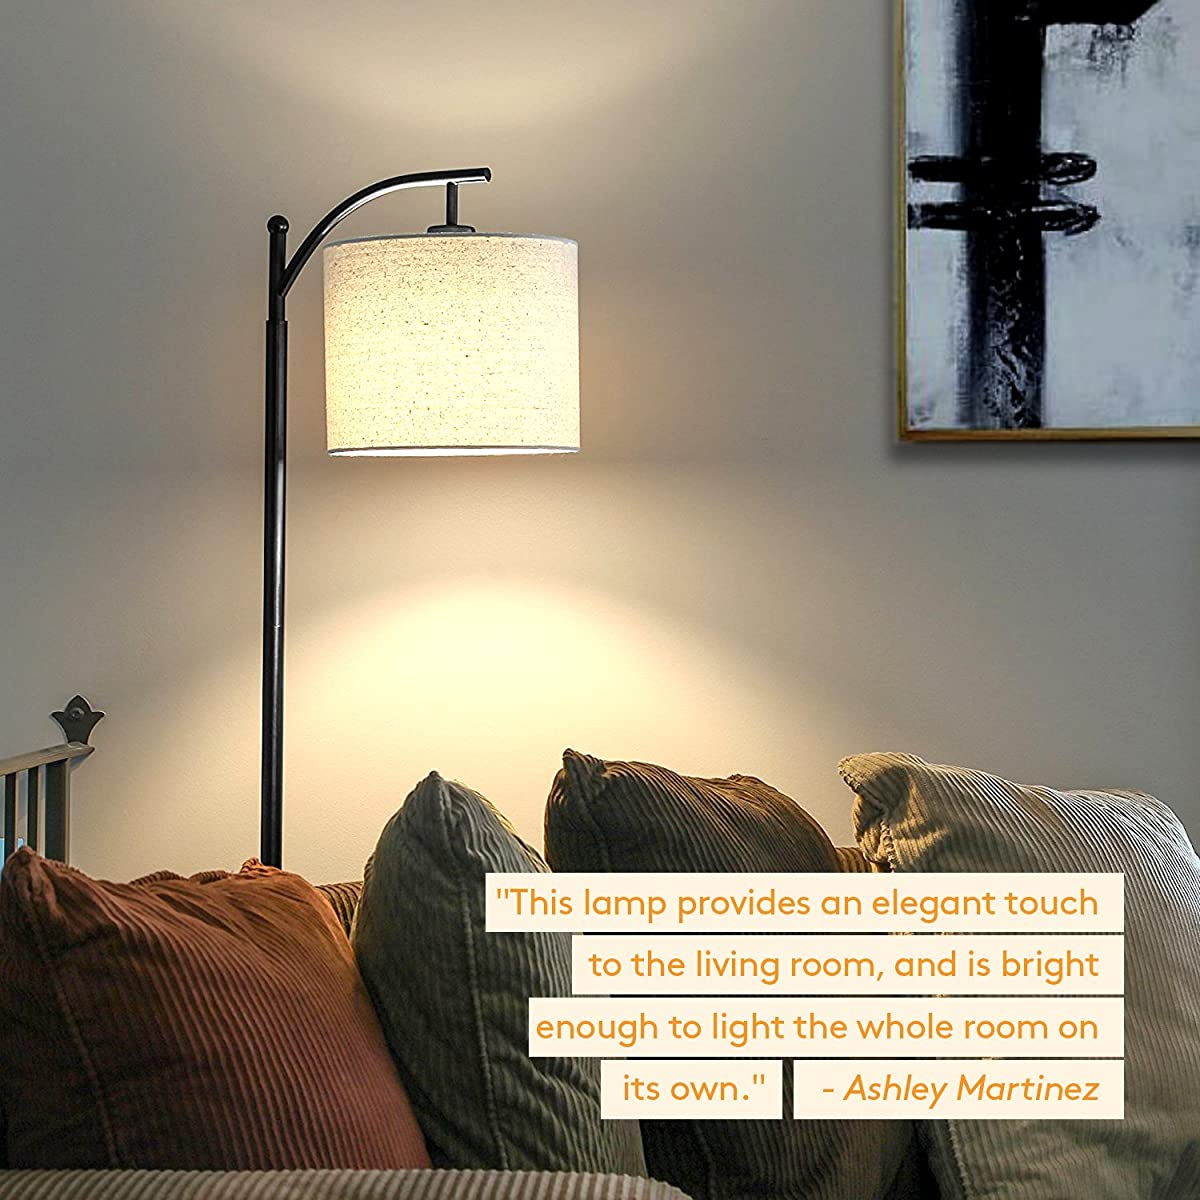 Brightech Montage LED Floor Lamp- Classic Arc Floor Lamp with Hanging Lamp Shade - Tall Industrial Uplight Lamp for Living Room, Family Room, Office or Bedroom, Energy Saving and Long Lasting- Black